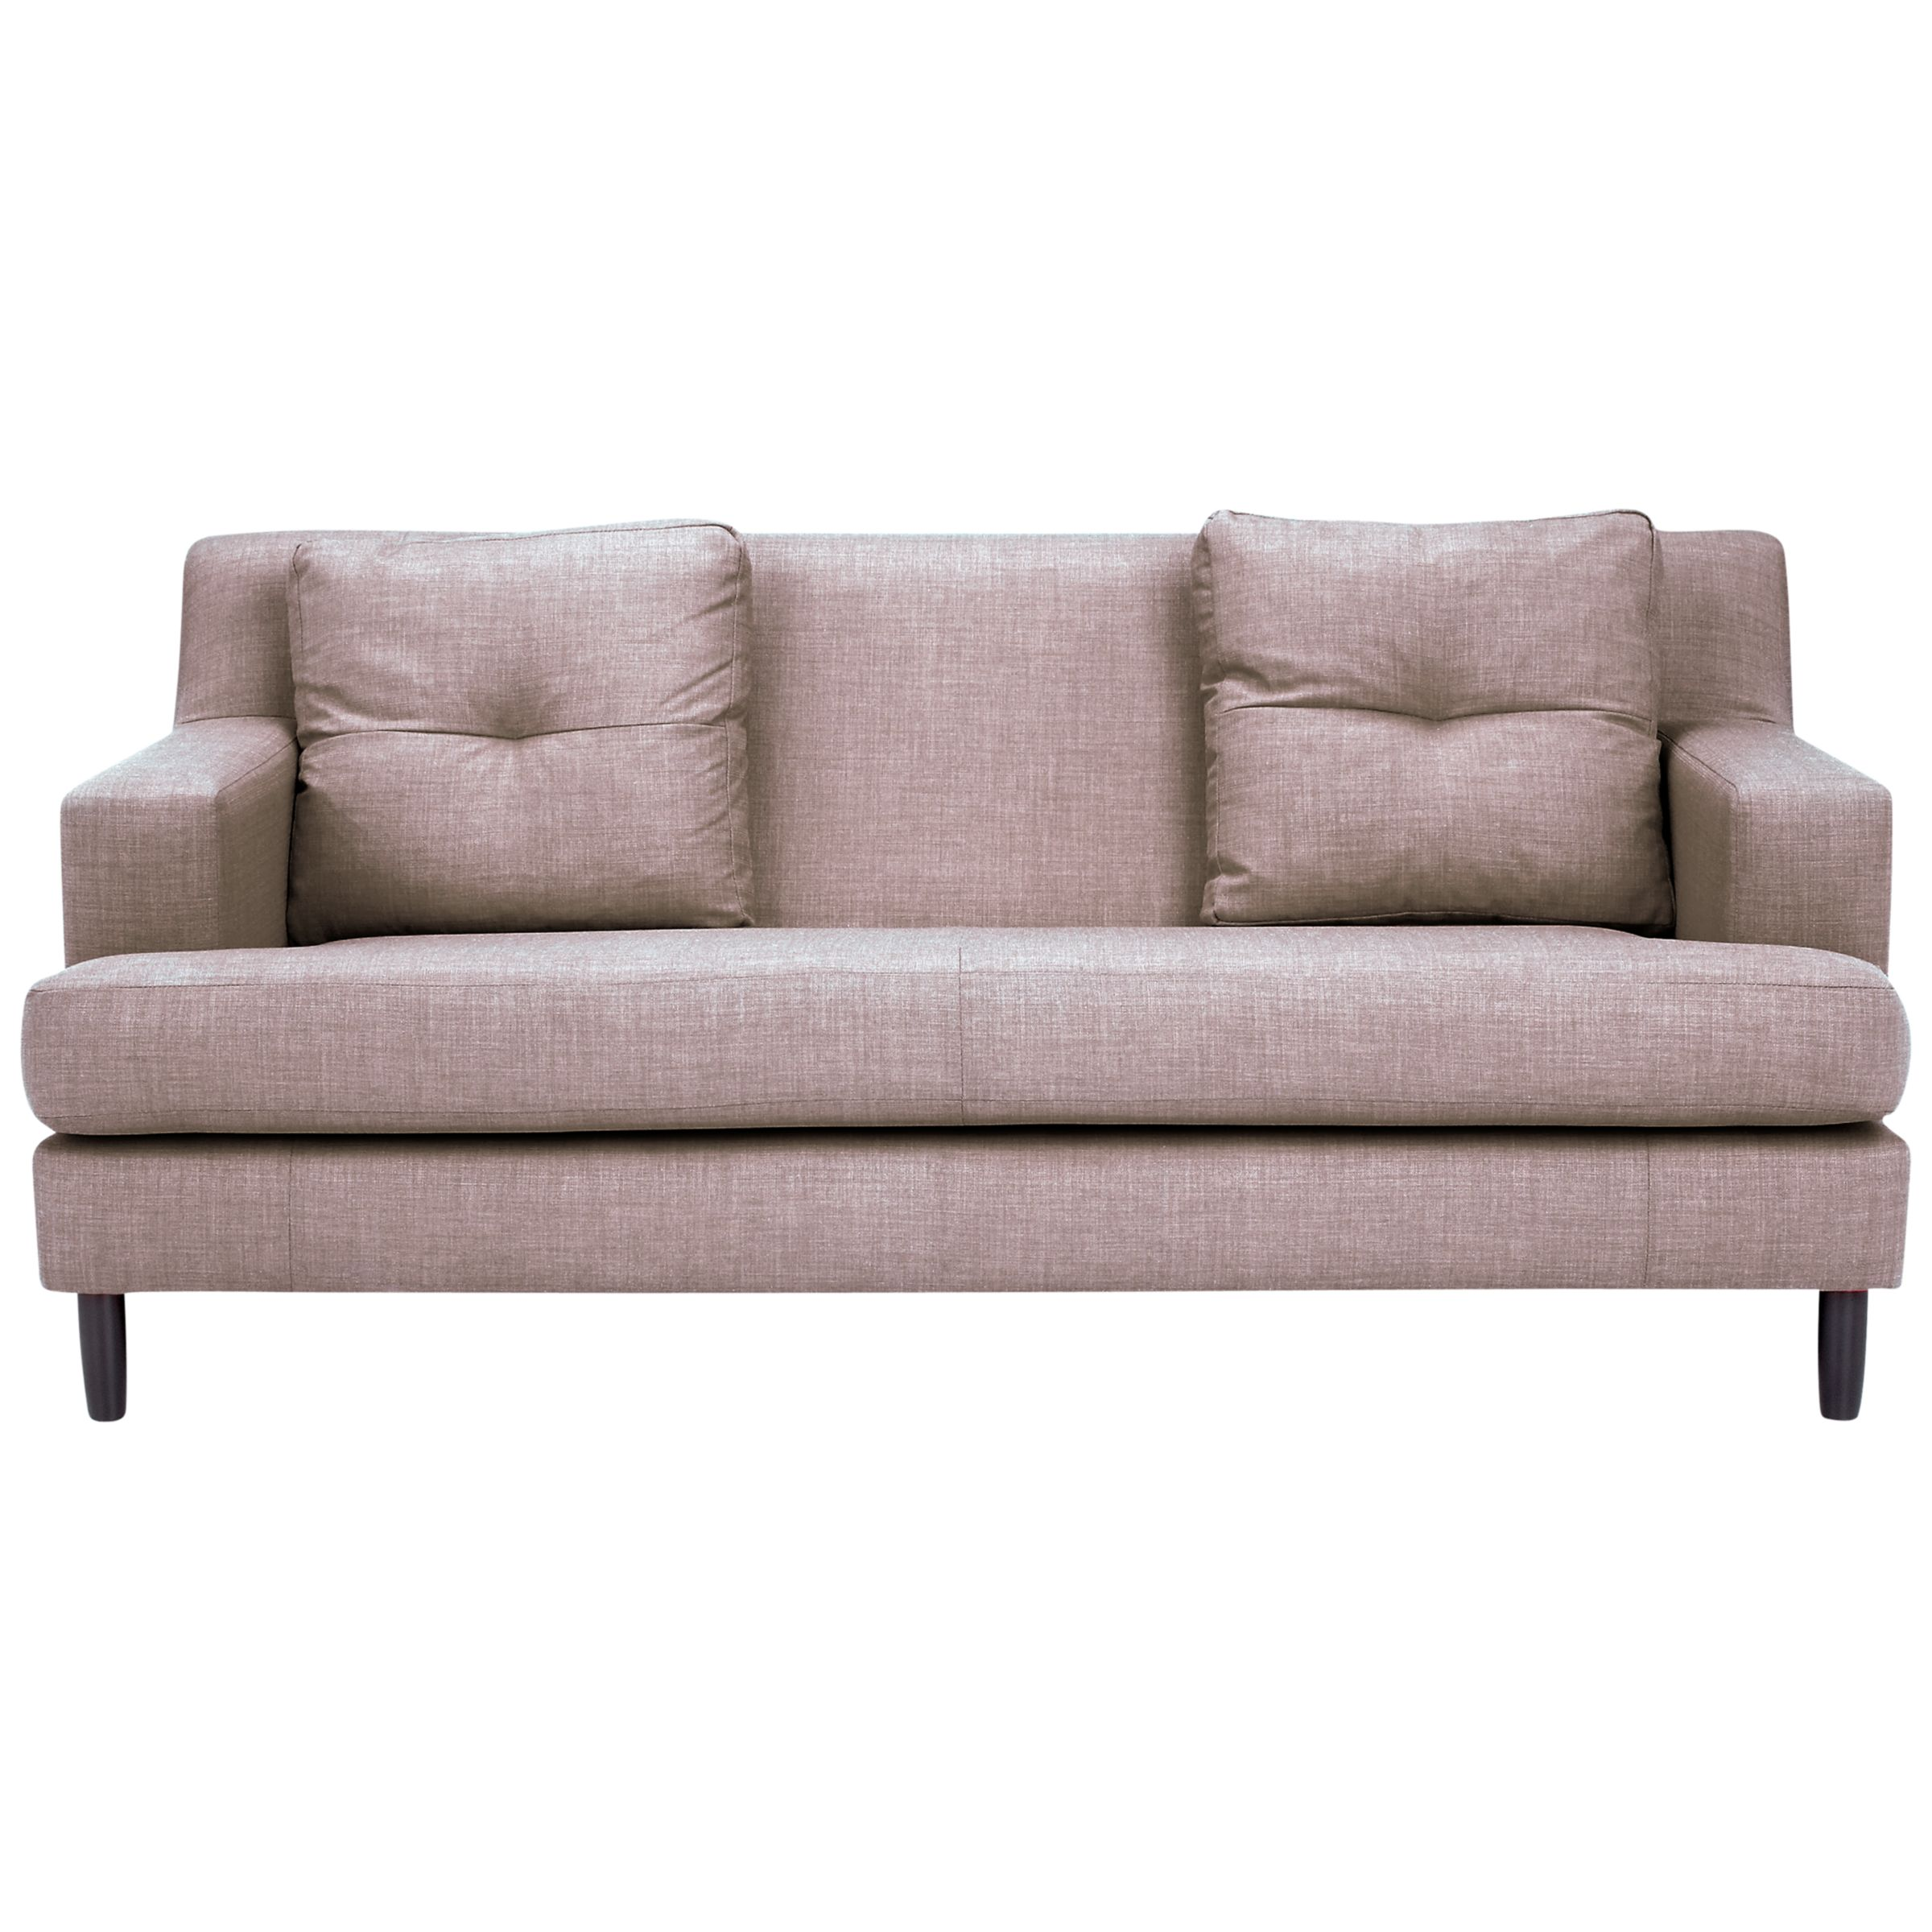 House by John Lewis Alex Small Sofa with Dark Legs